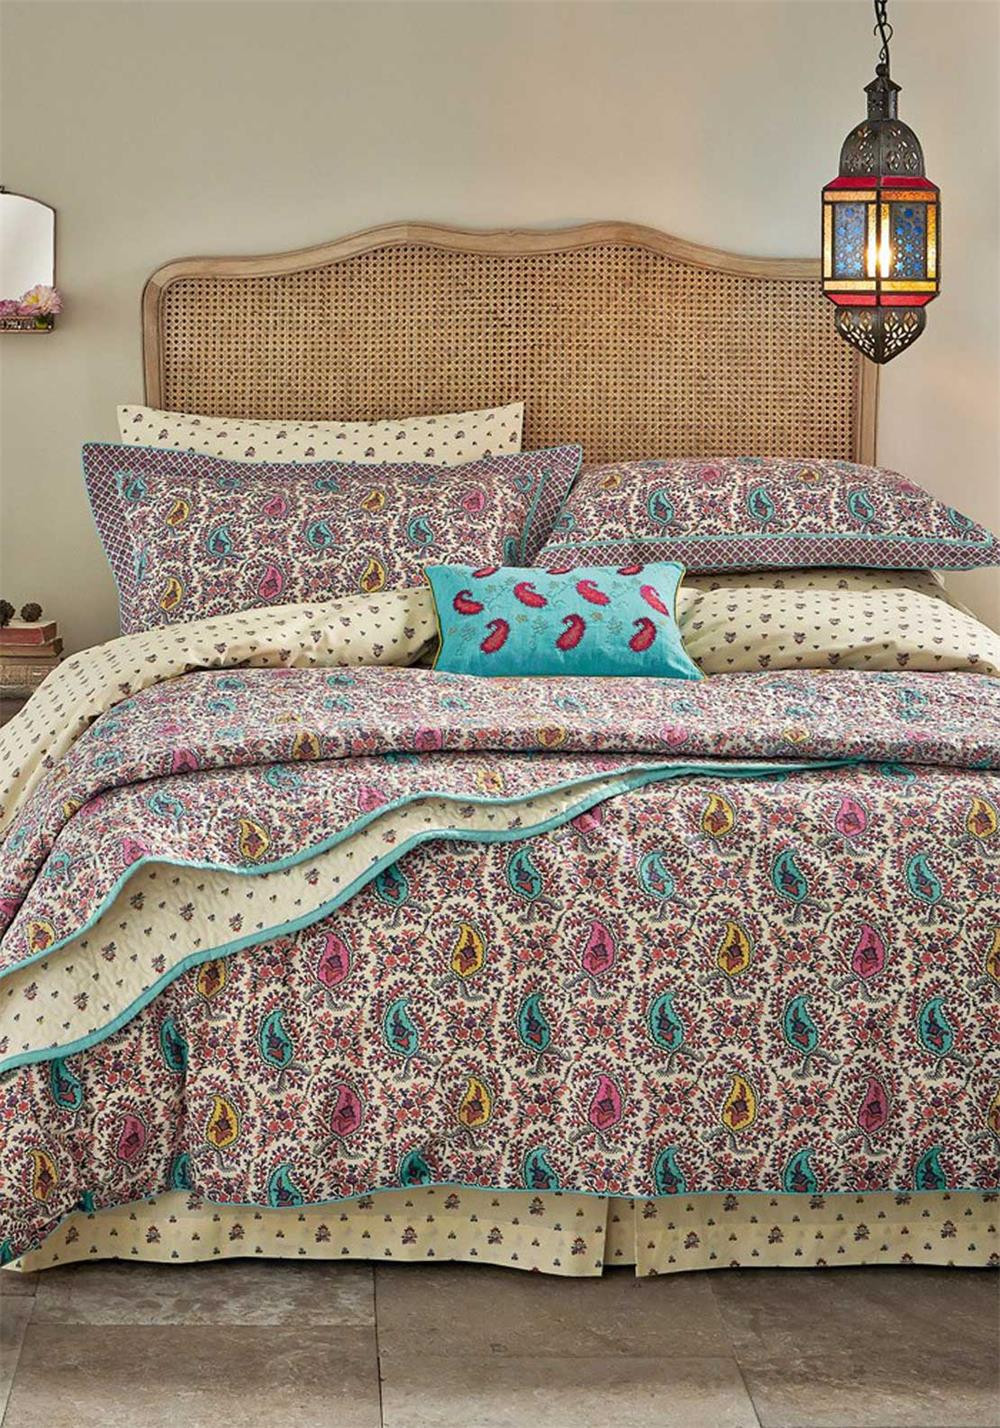 V&A Kashmir Duvet Cover Set, Multi-Coloured